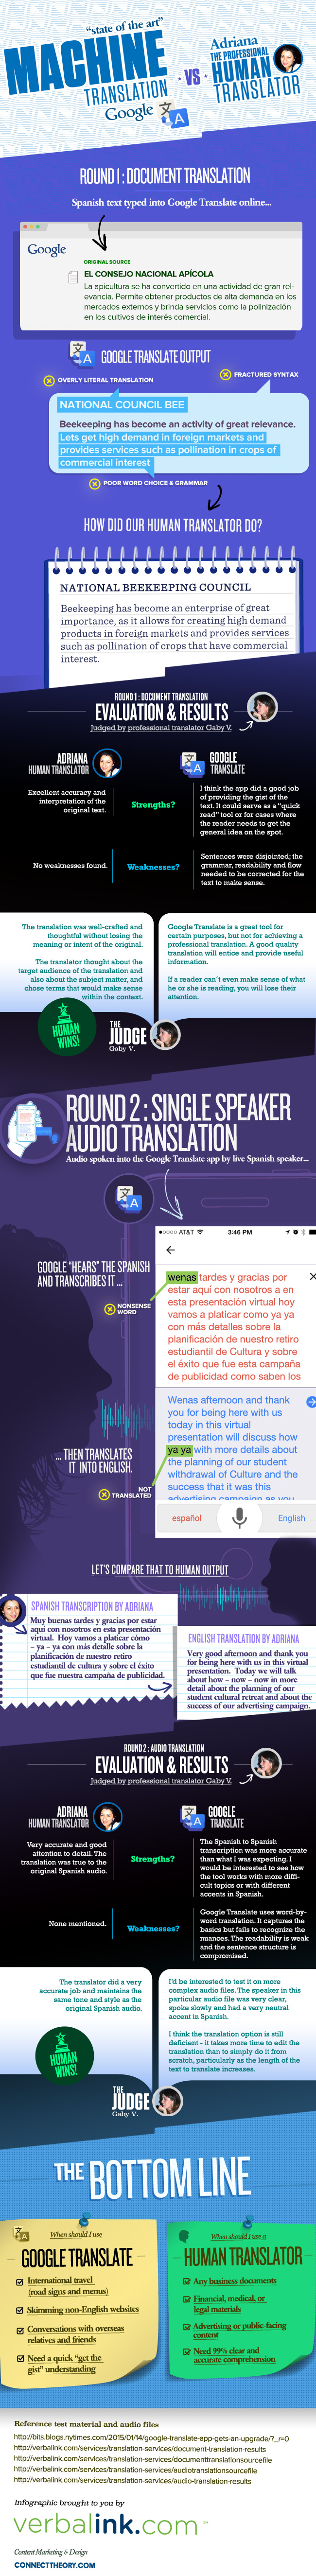 Traductor de Google vs Traductor humano